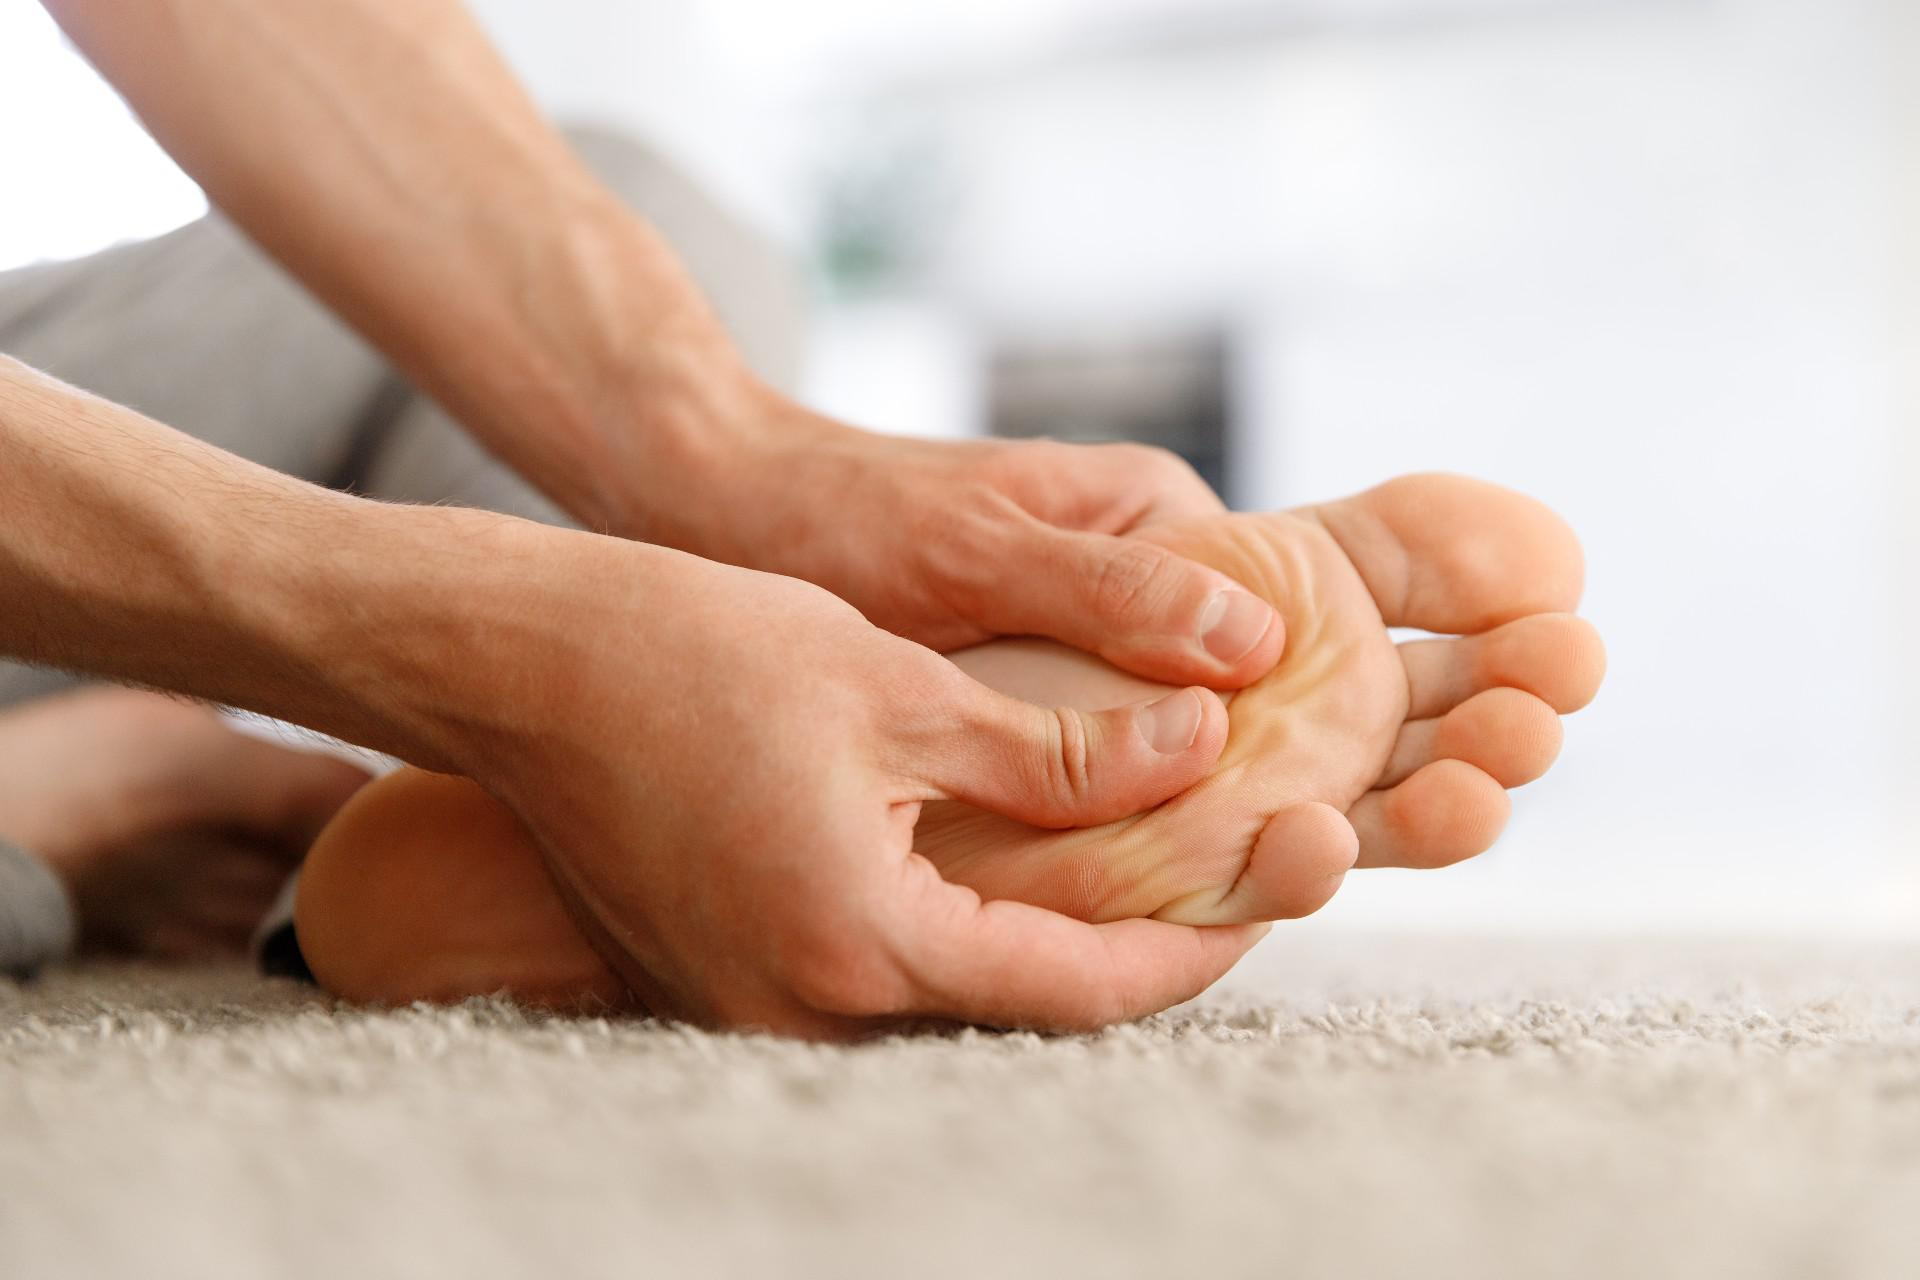 FOOT PAIN DOCTOR NYC